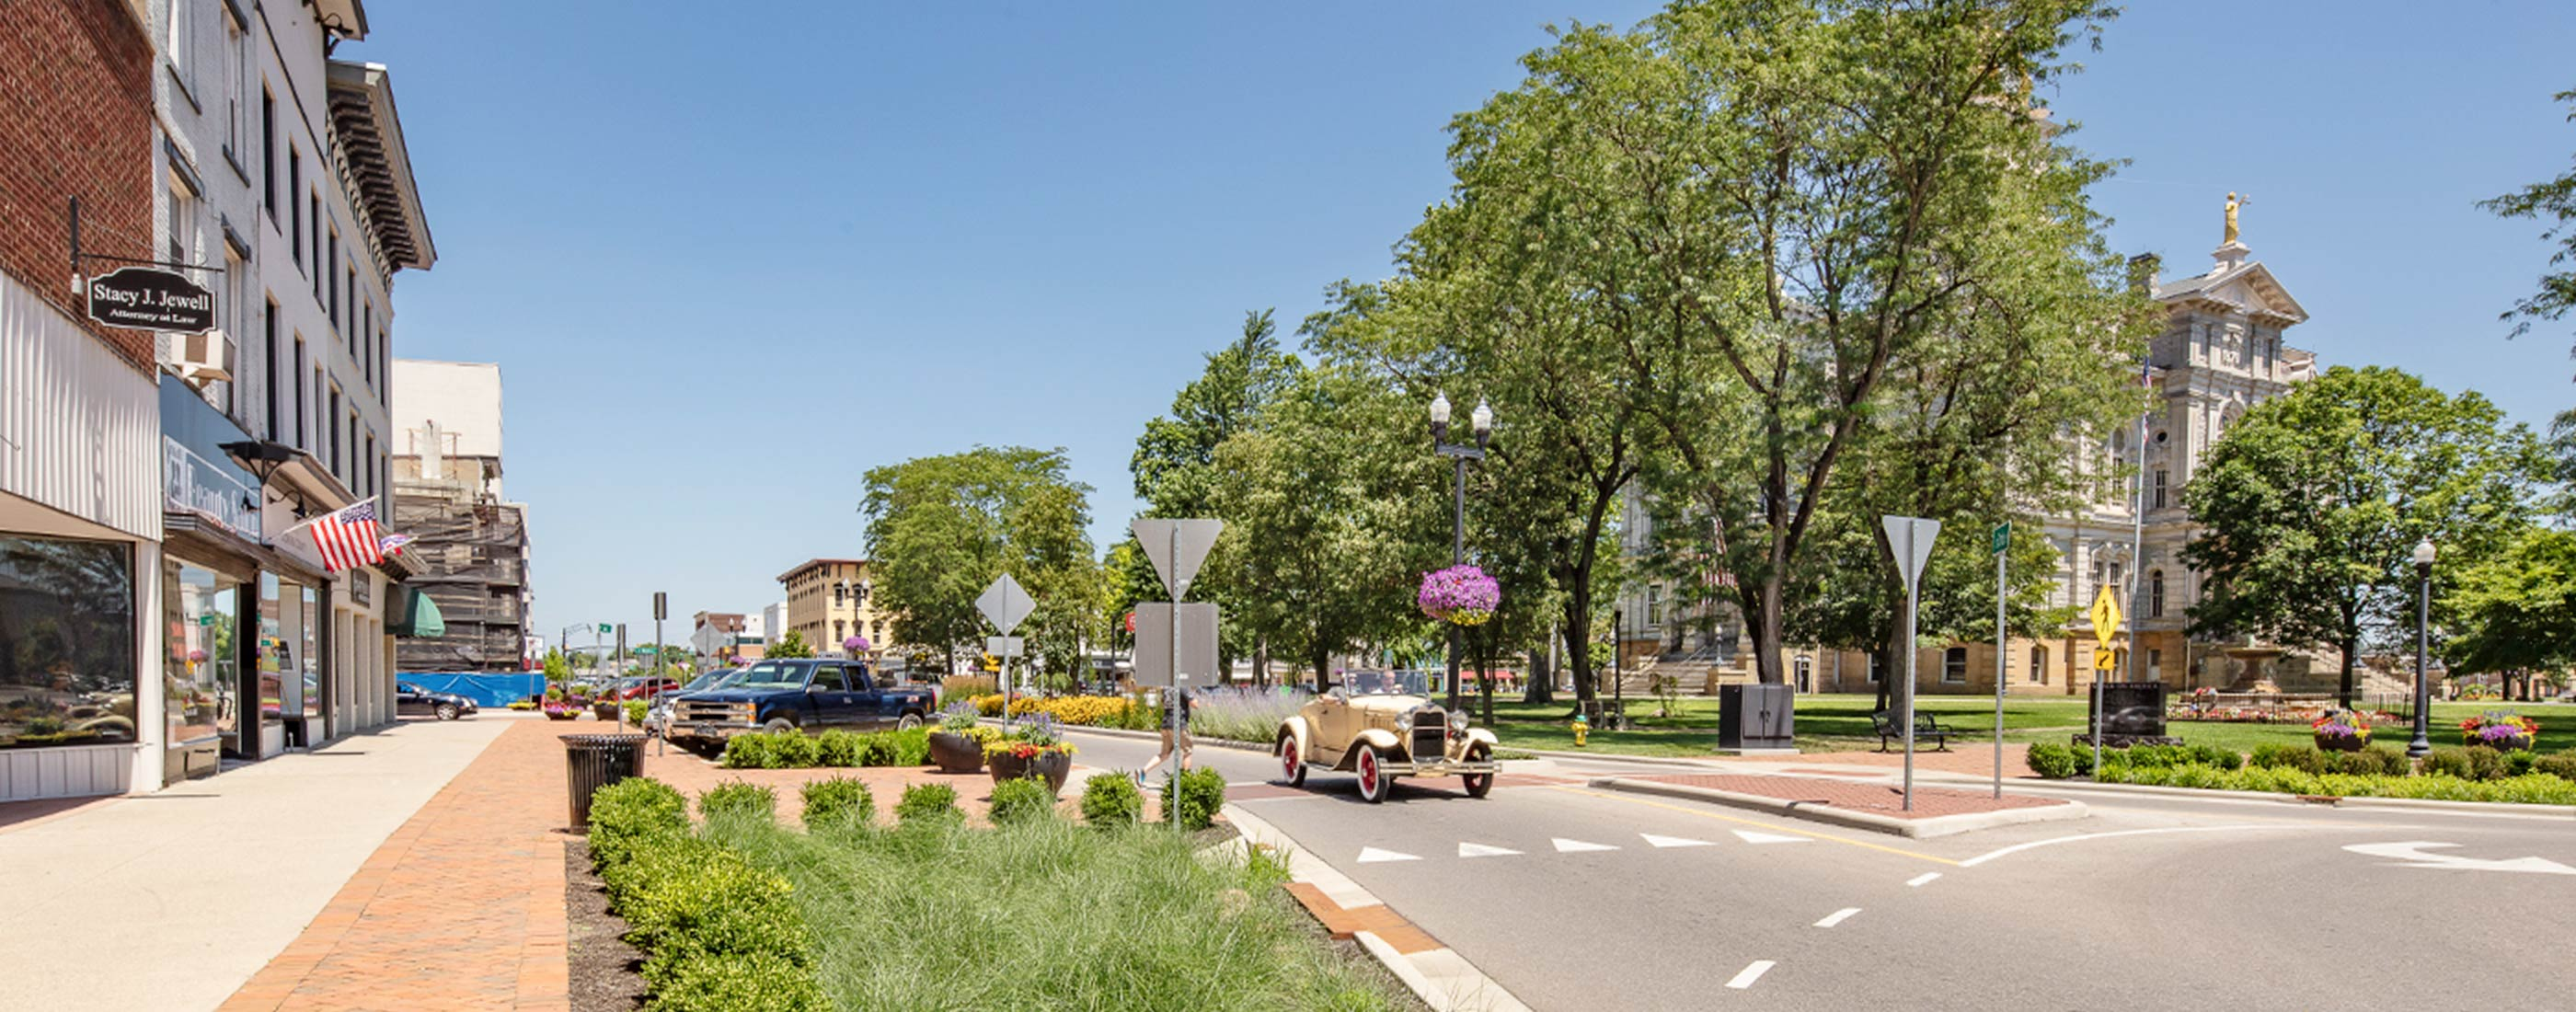 An old car drives through Newark, Ohio's roundabout and streetscape.